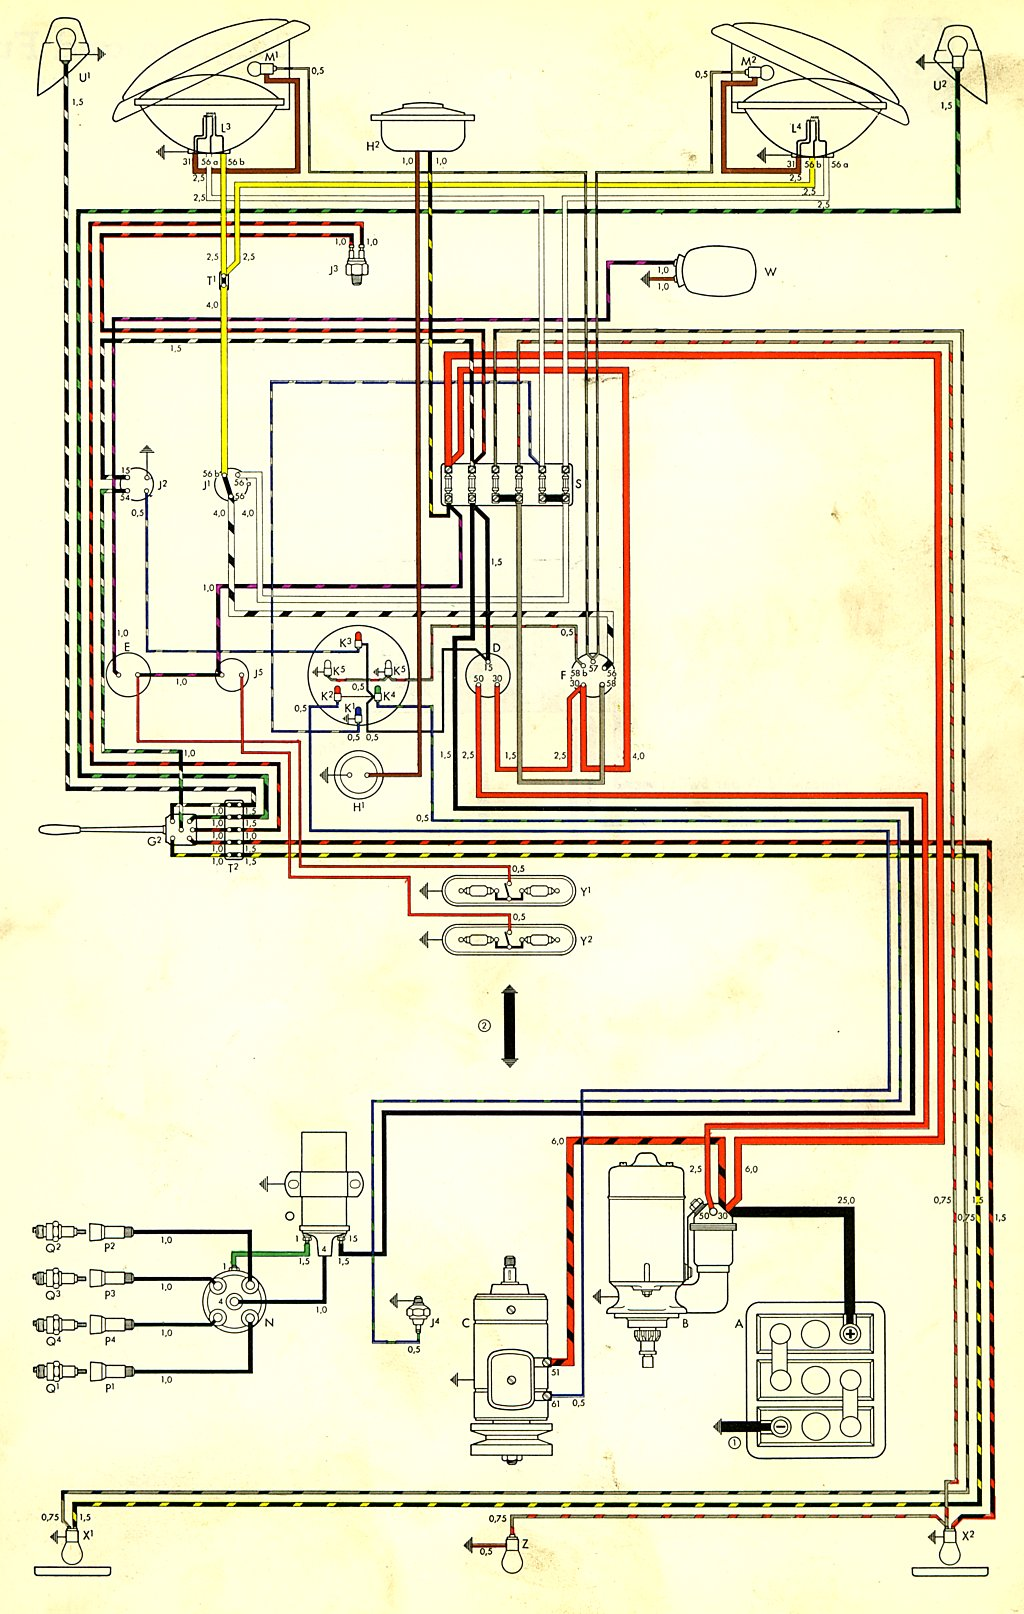 hight resolution of vw bus wiring diagram 1986 box wiring diagram 1998 vw beetle fuse diagram thesamba com type